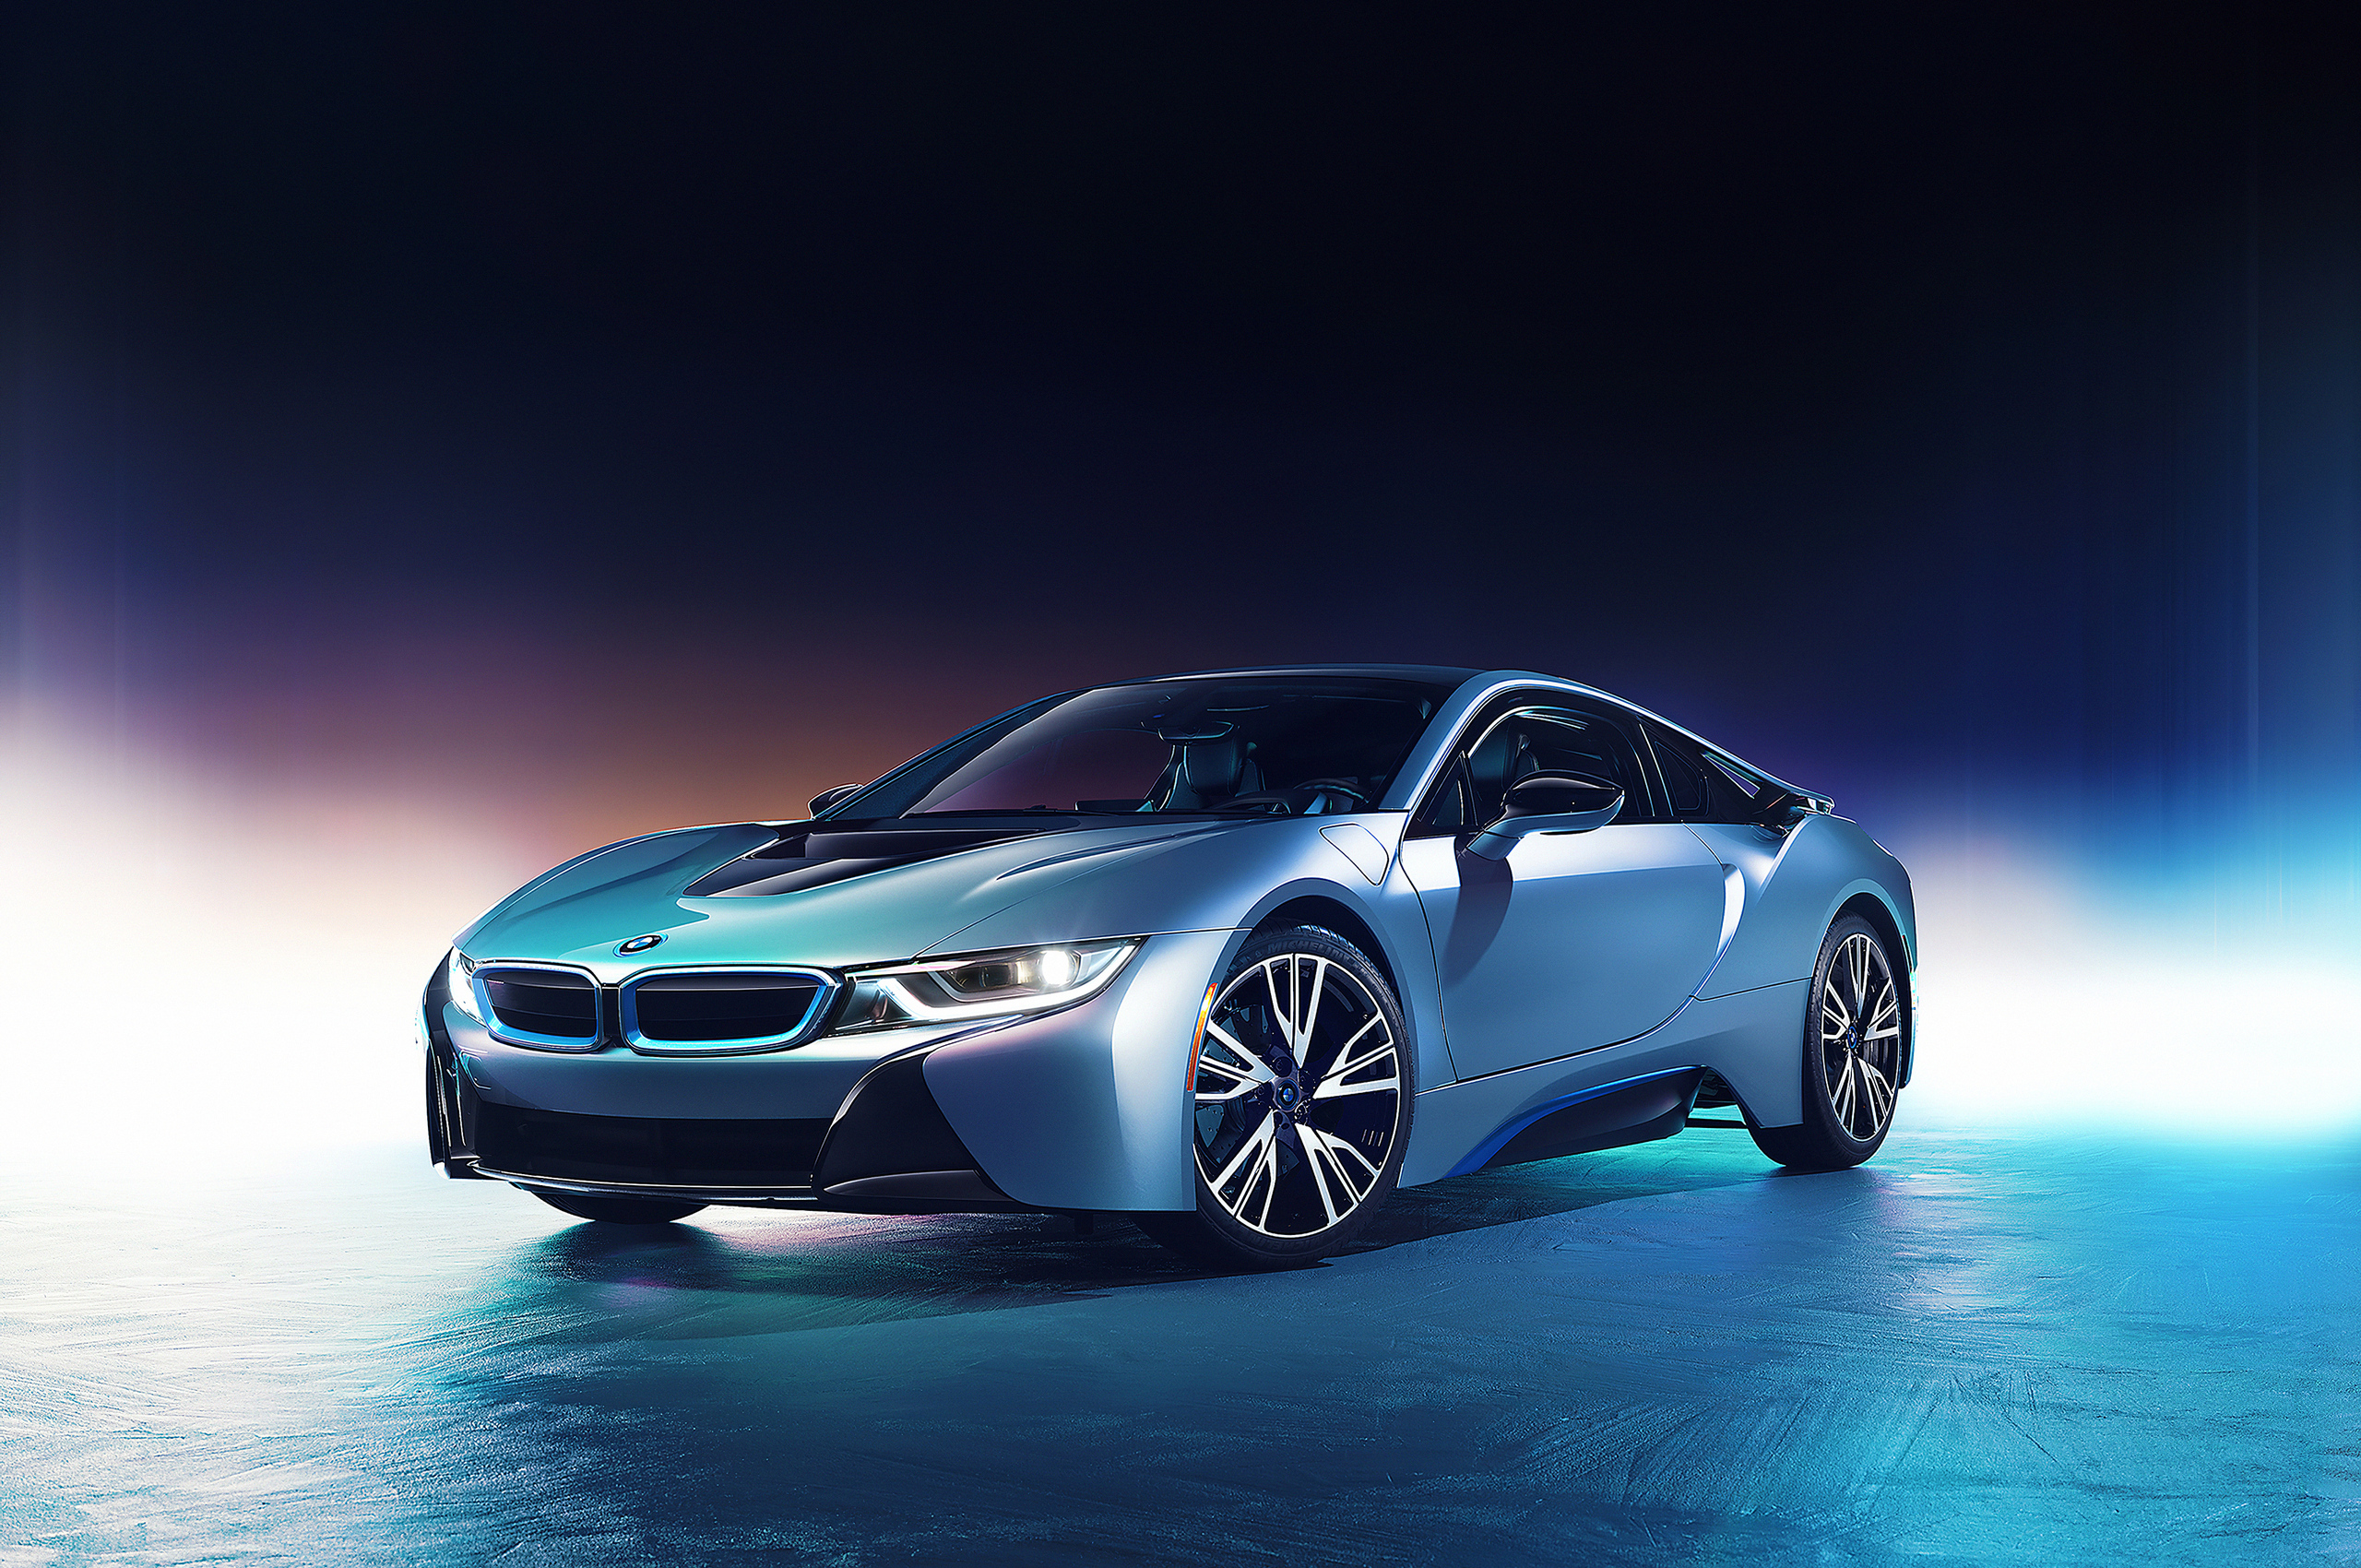 2560x1700 Bmw I8 4k 2019 Chromebook Pixel Hd 4k Wallpapers Images Backgrounds Photos And Pictures